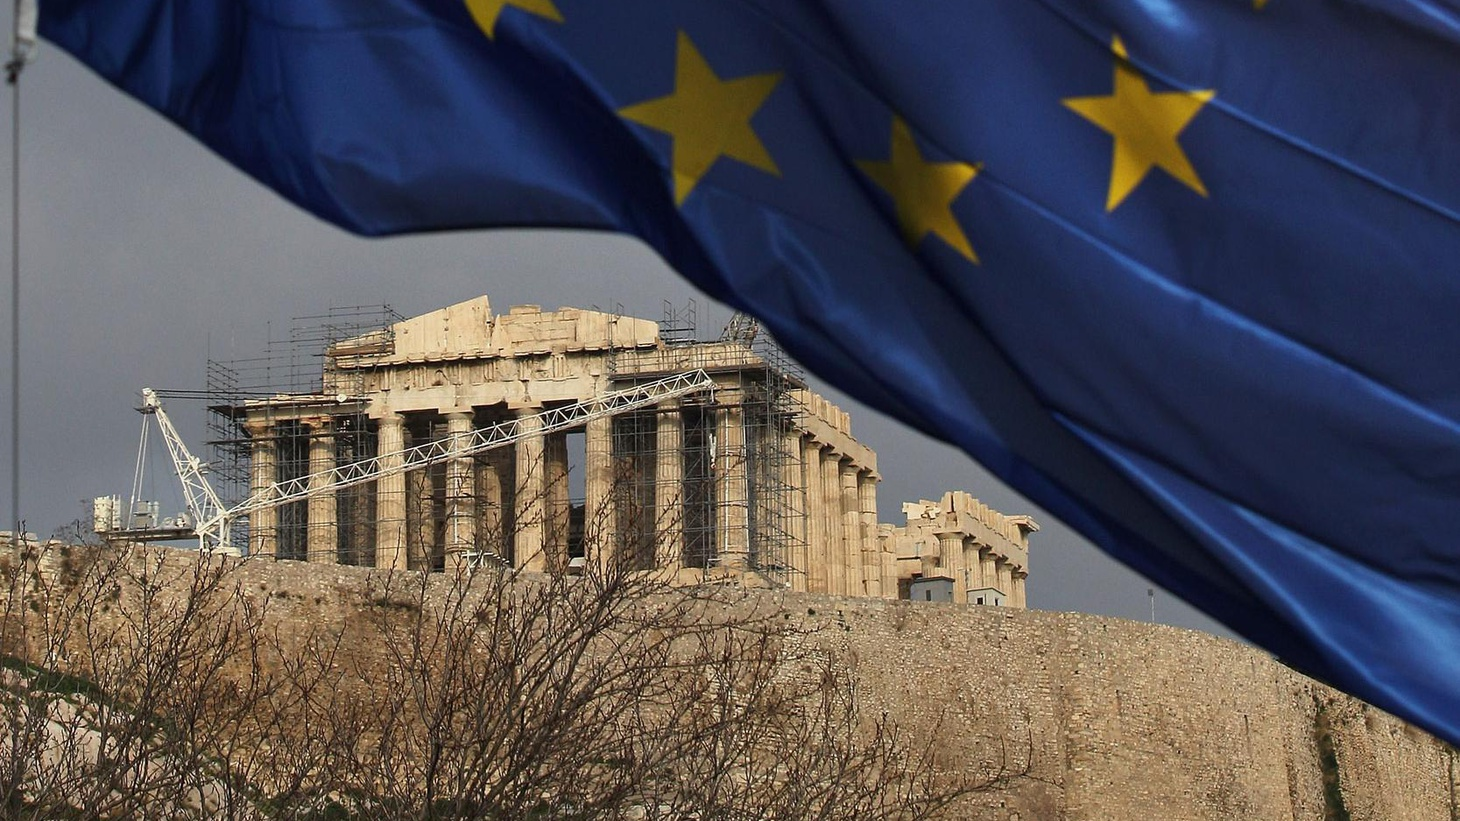 """For a European bailout, Greece will impose more """"austerity measures,"""" the kind that led to recent riots and burning in Athens. Will there be recovery or """"pain with no gain?"""""""